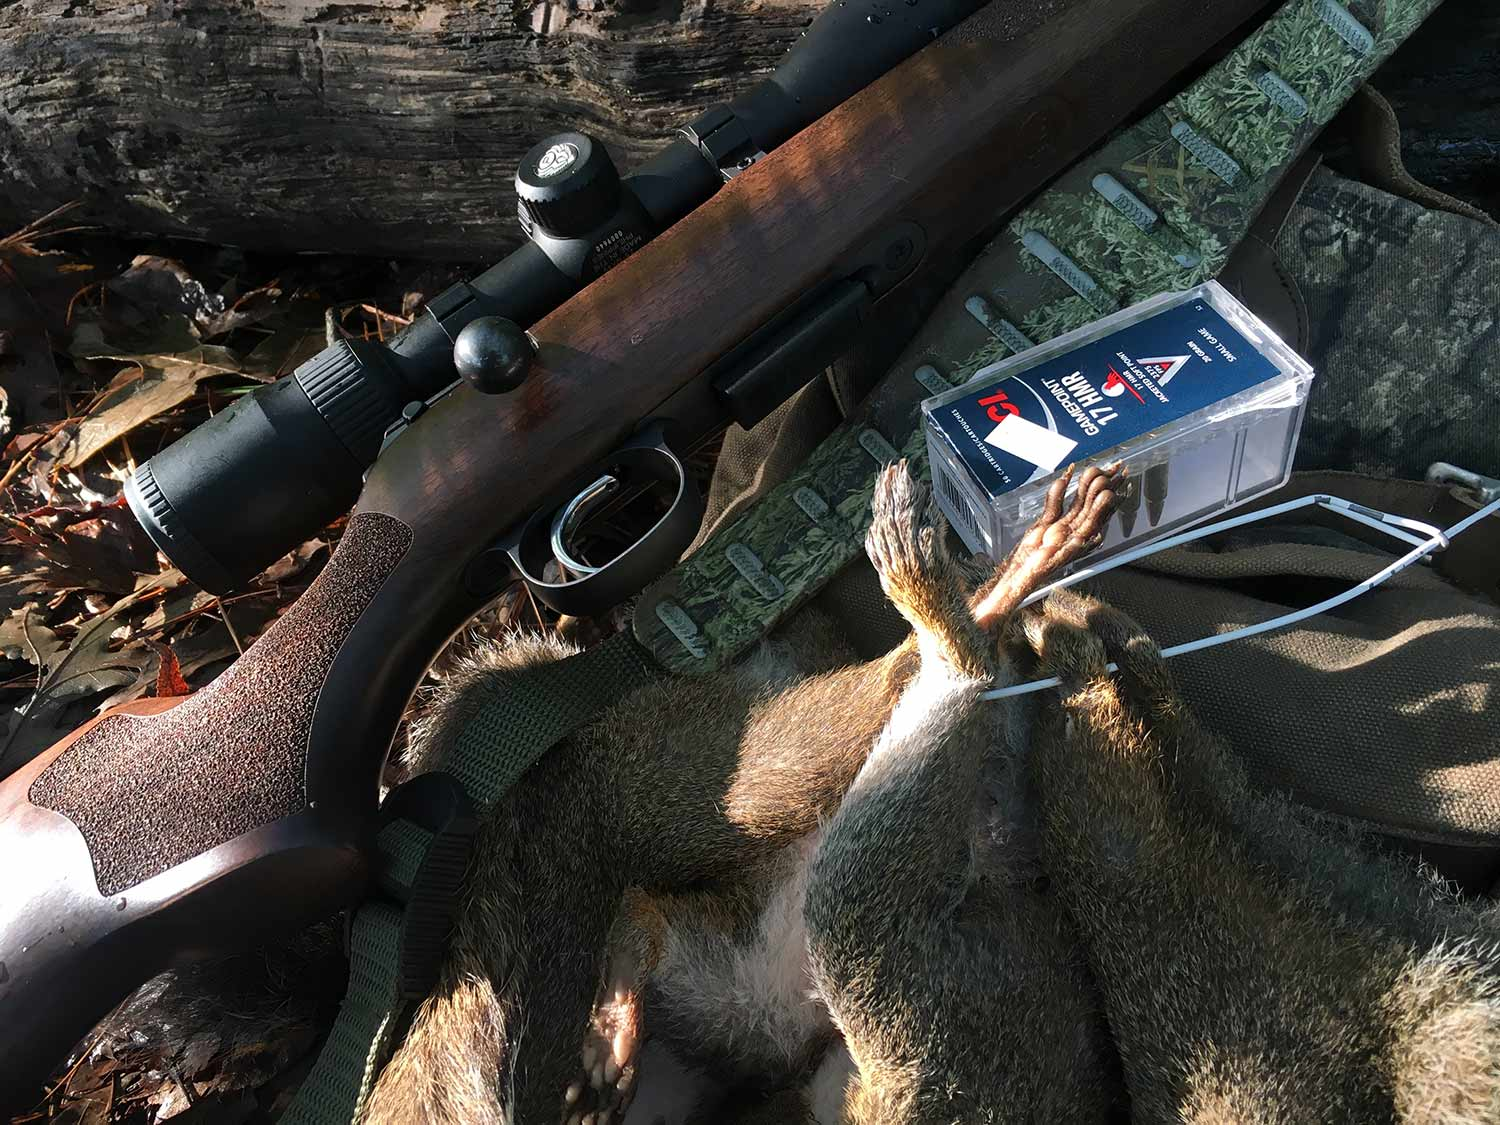 The Best Magnum Rimfire Rifles and Ammo for Squirrel Hunting